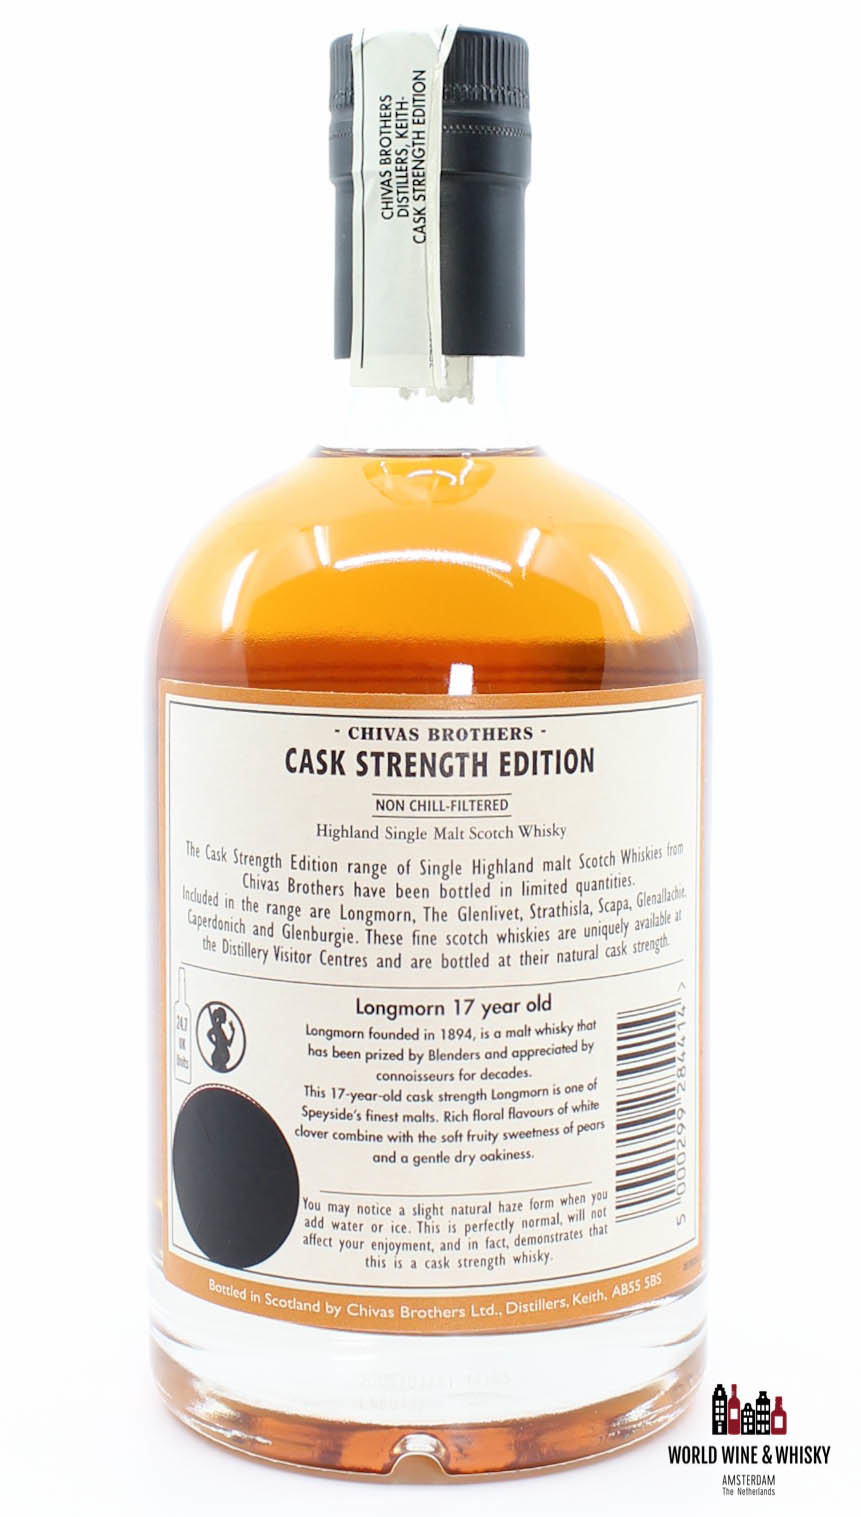 Longmorn Longmorn 17 Years Old 1991 2008 Batch LM 17 005 - Chivas Brothers - Cask Strength Edition 49.4%